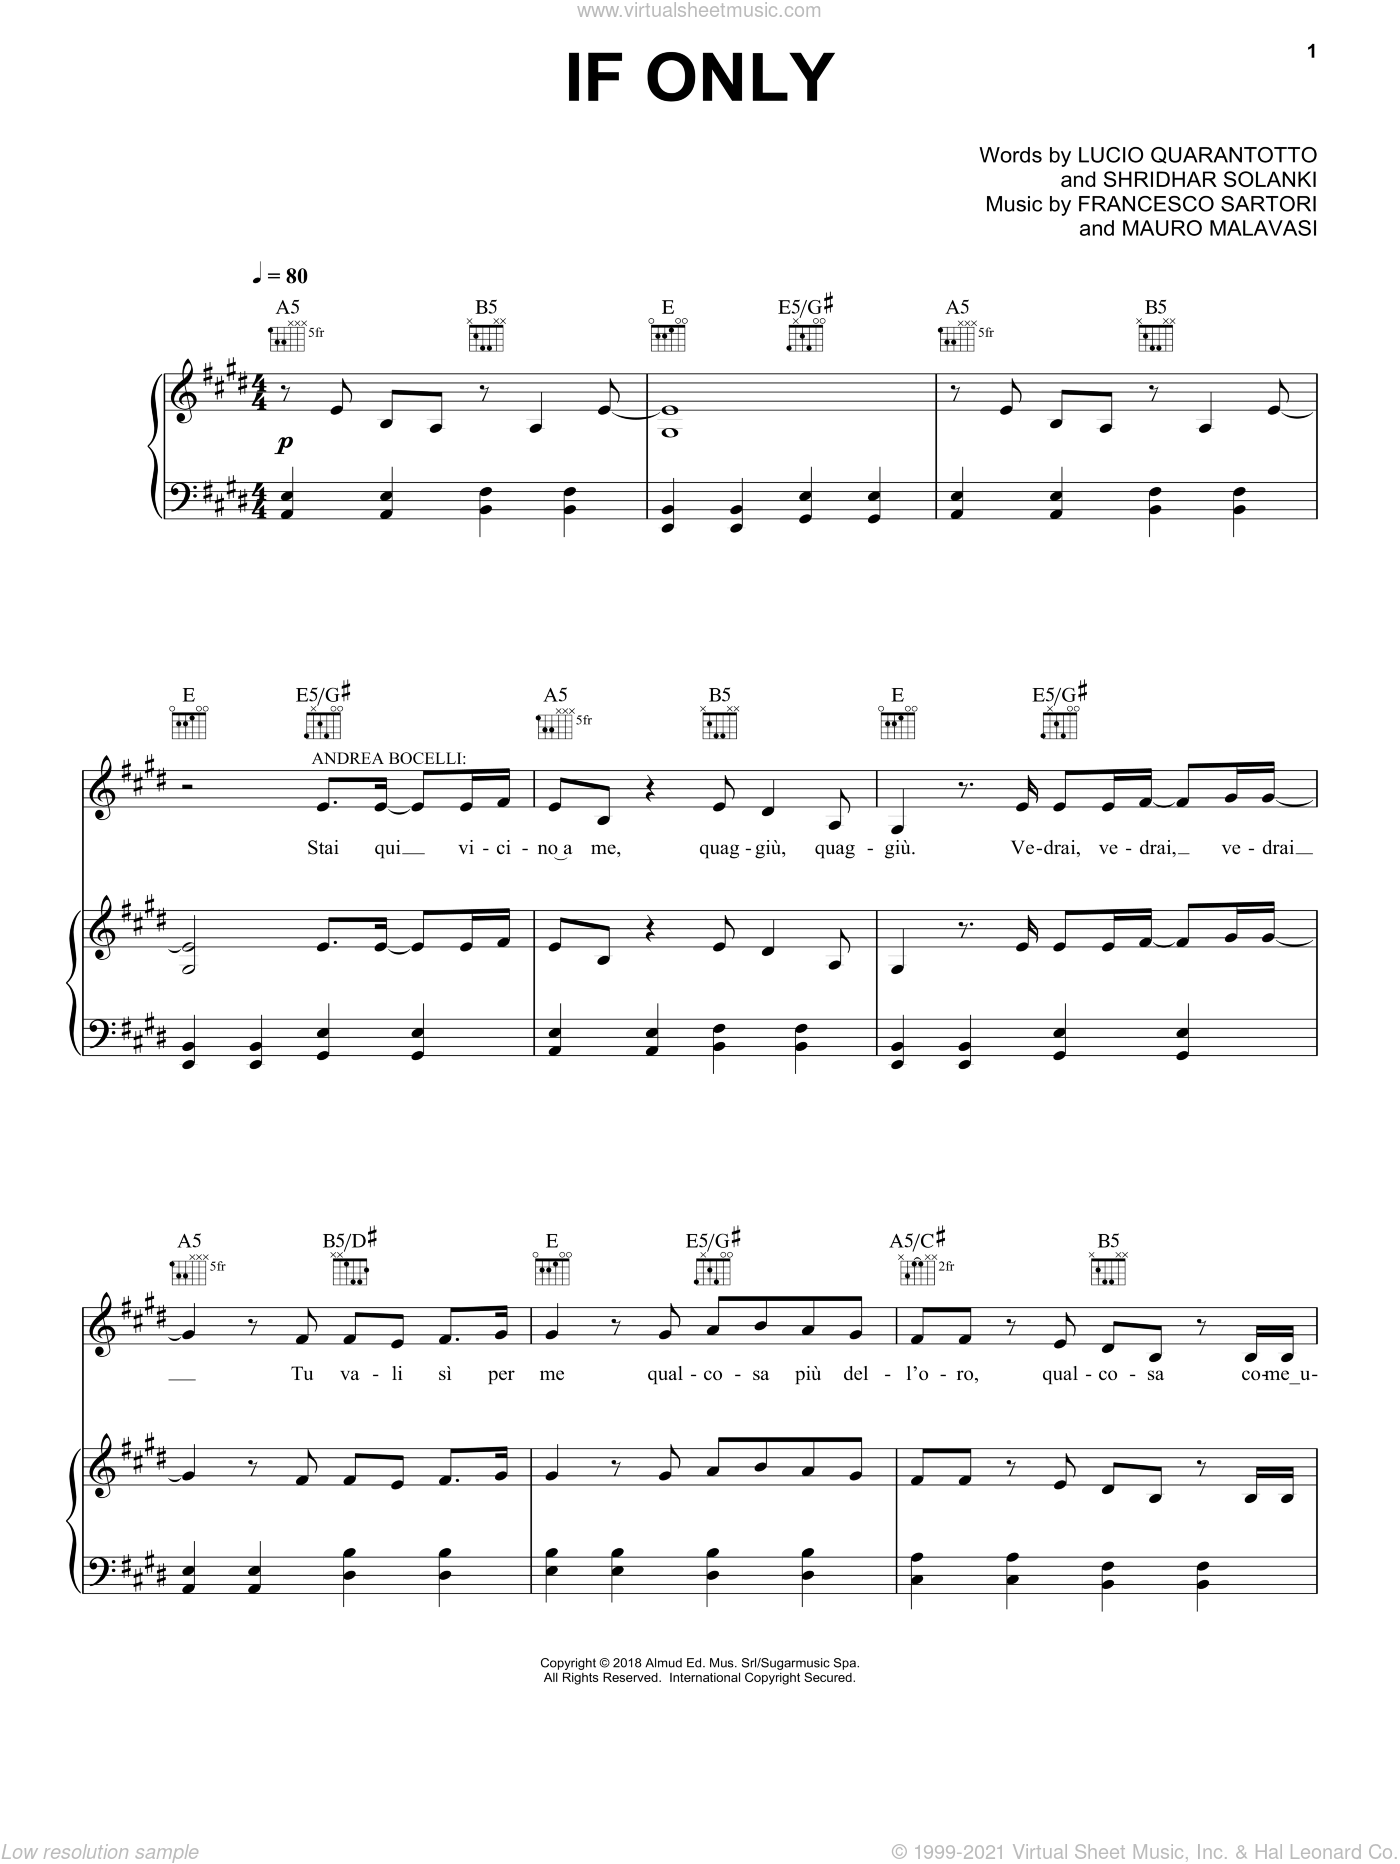 If Only (feat. Dua Lipa) sheet music for voice, piano or guitar by Andrea Bocelli, Francesco Sartori, Lucio Quarantotto, Mauro Malavasi and Shridhar Solanki, intermediate skill level